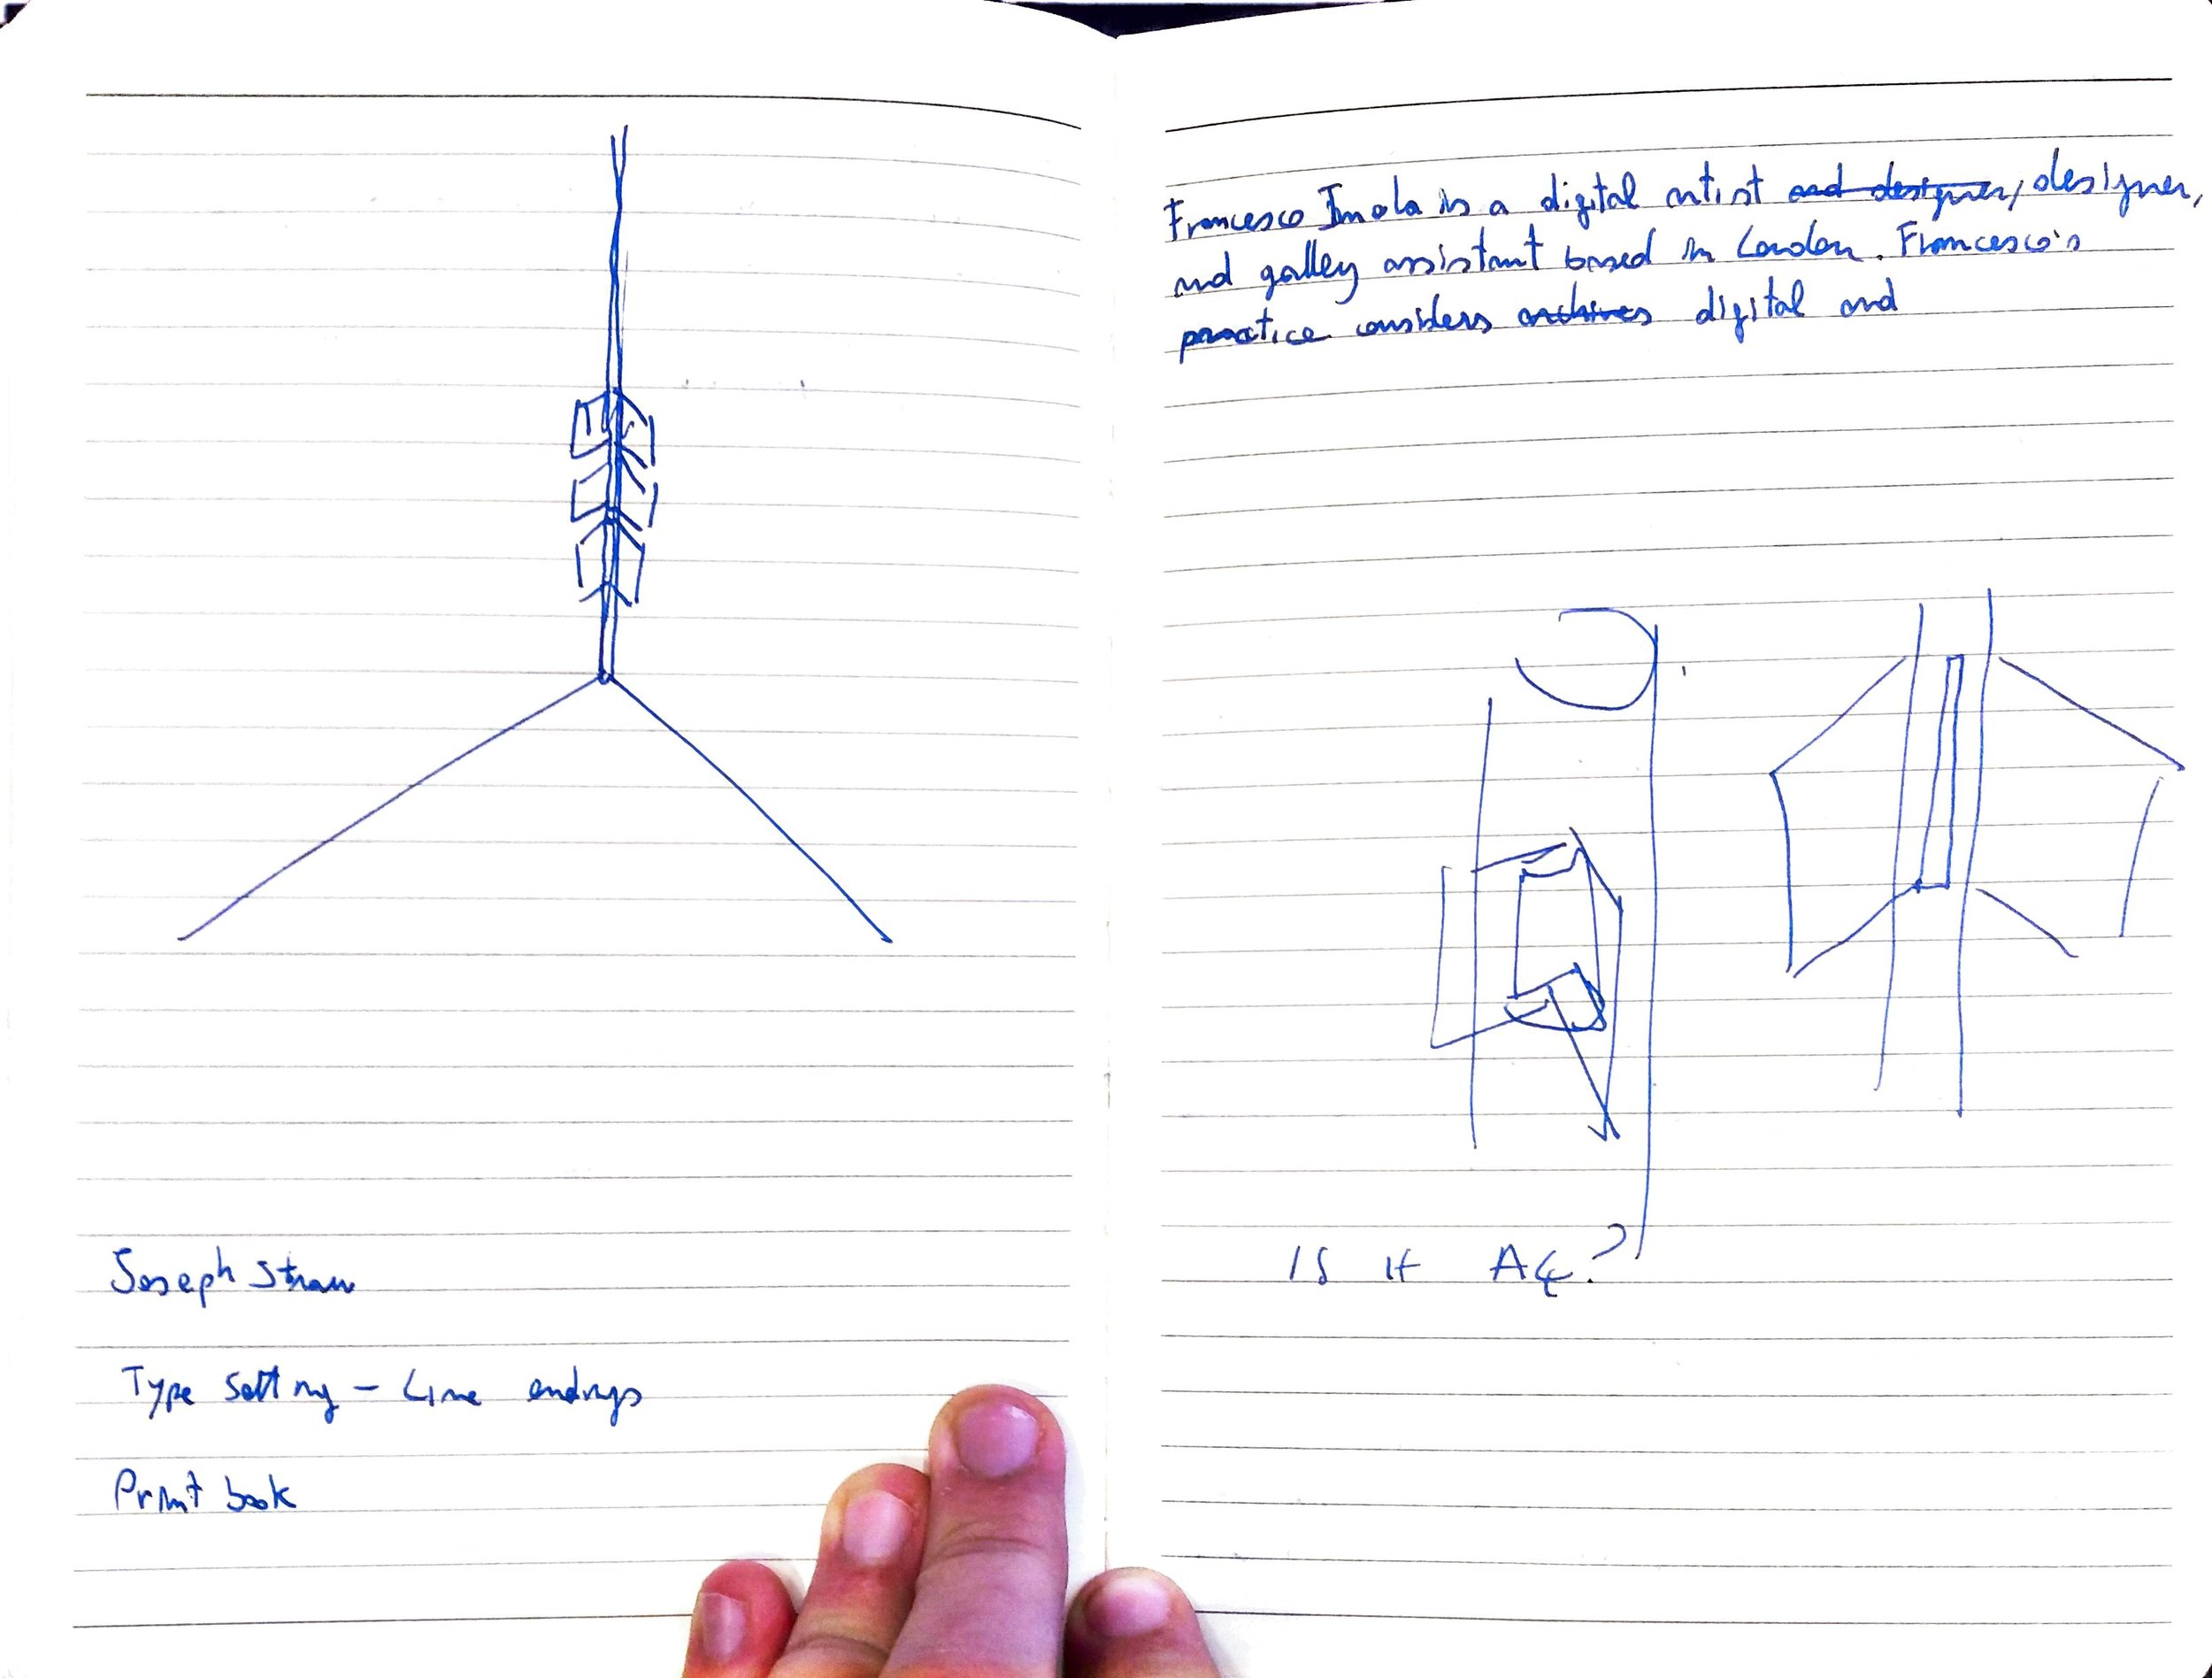 black and pink notebooks_Page_50_Image_0001.jpg